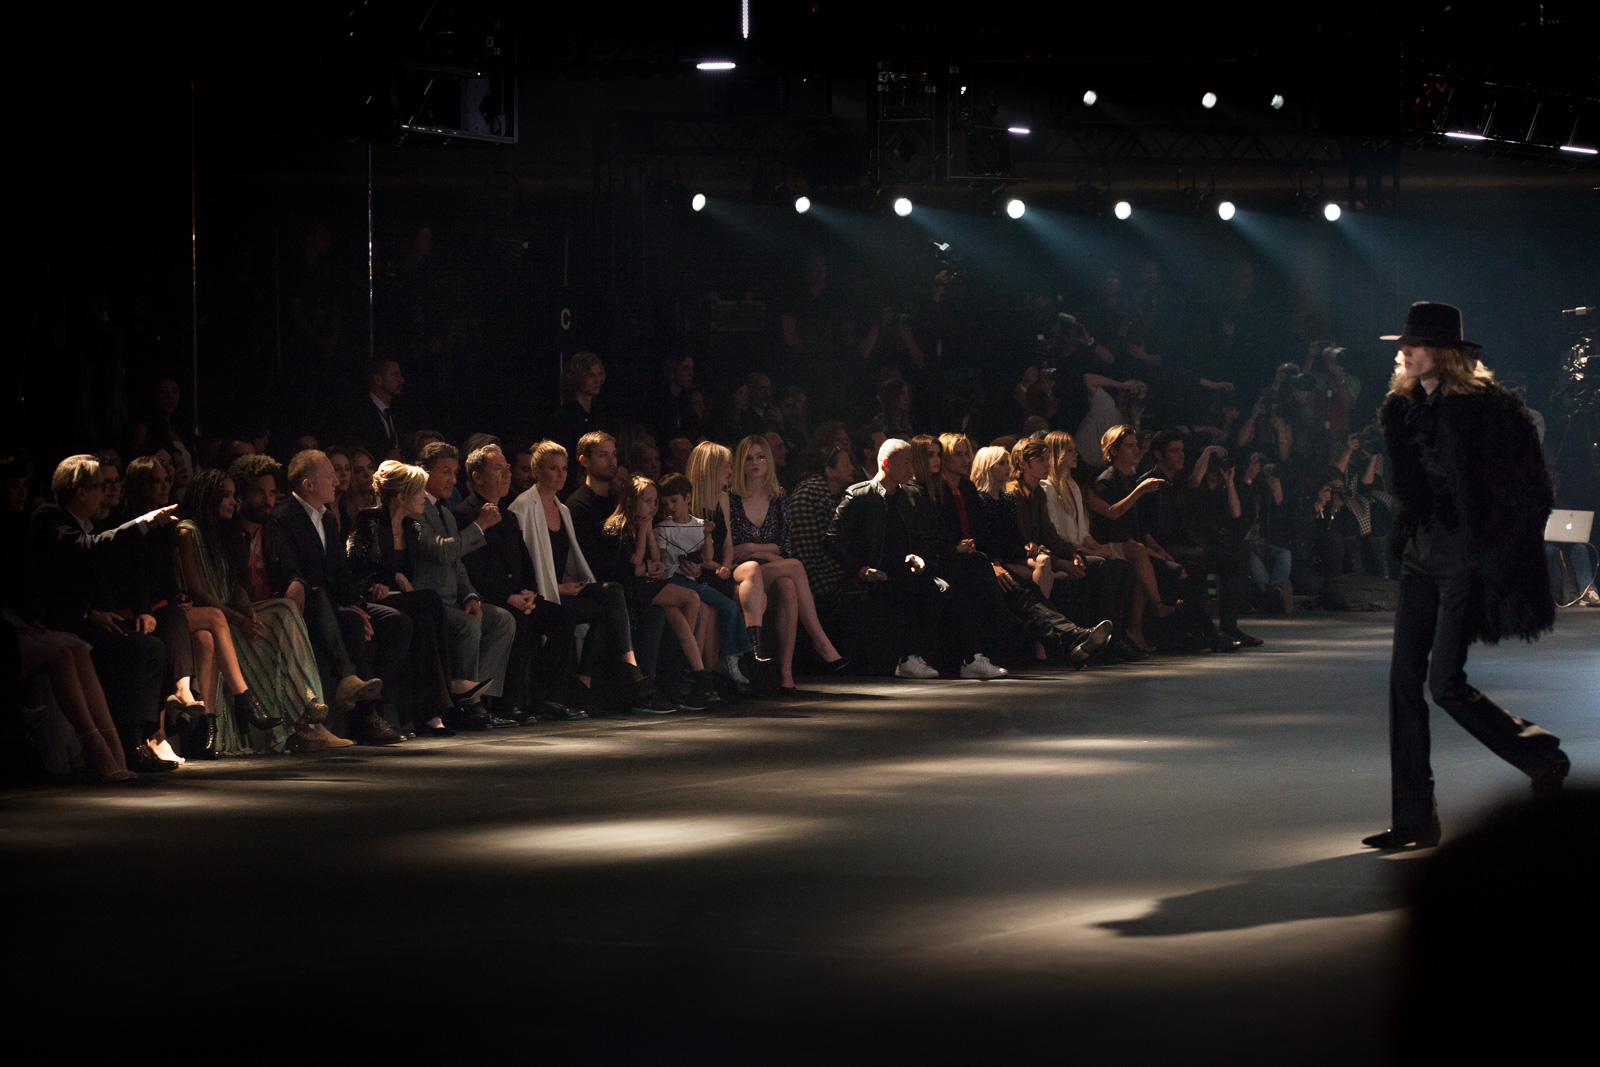 Actor Gary Oldman, singer Alexandra Edenborough, actress Demi Moore, Lisa Bonet, recording artist Lenny Kravitz, CEO of Kering Francois-Henri Pinault, actress Jane Fonda, and Sylvester Stallone in the front row at Saint Laurent FW16 (Hedi Slimane) at